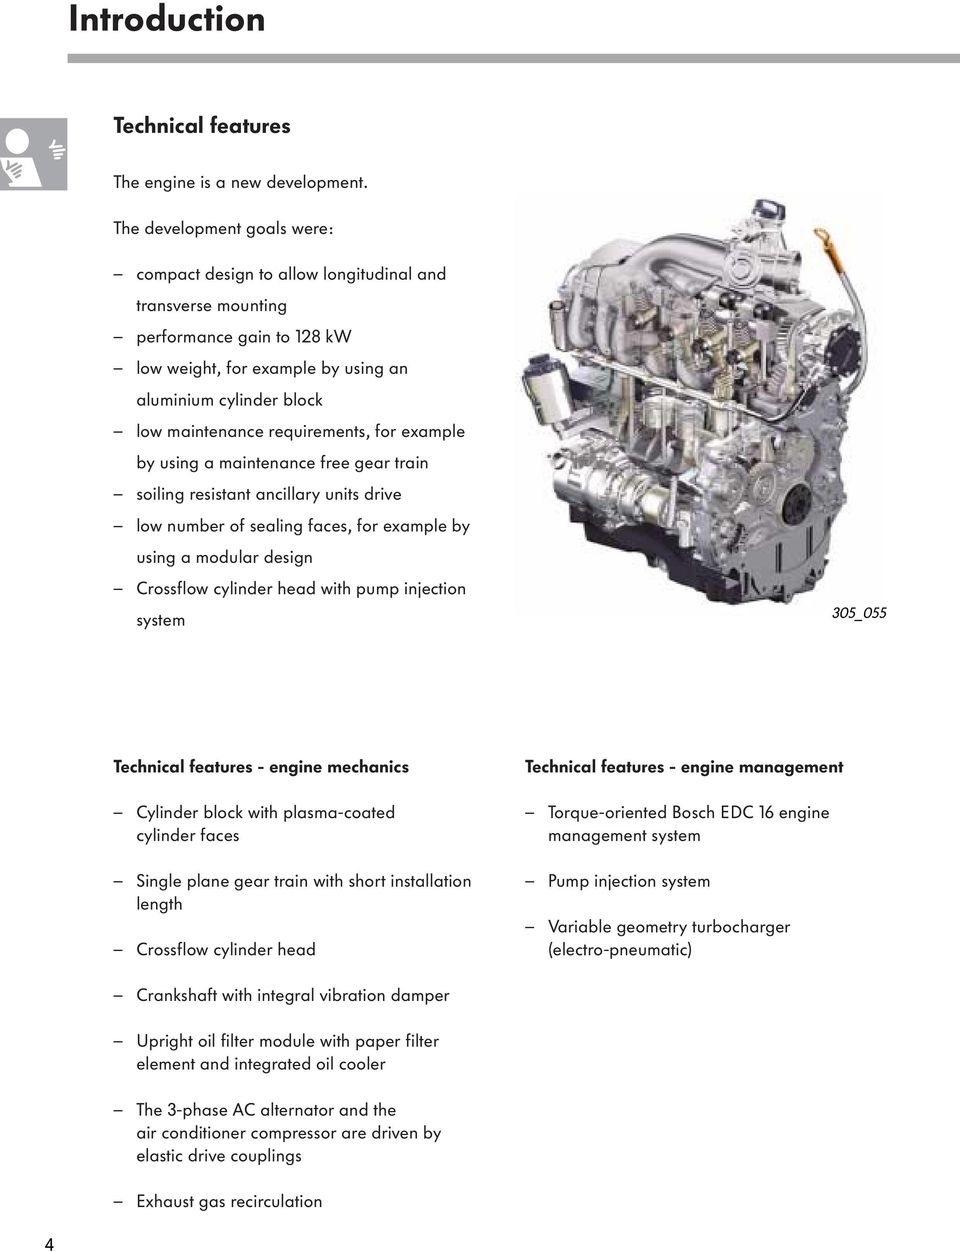 The 25 L R5 Tdi Engine Pdf System 2000 Vw Beetle Diagram Requirements For Example By Using A Maintenance Free Gear Train Soiling Resistant Ancillary Units Drive